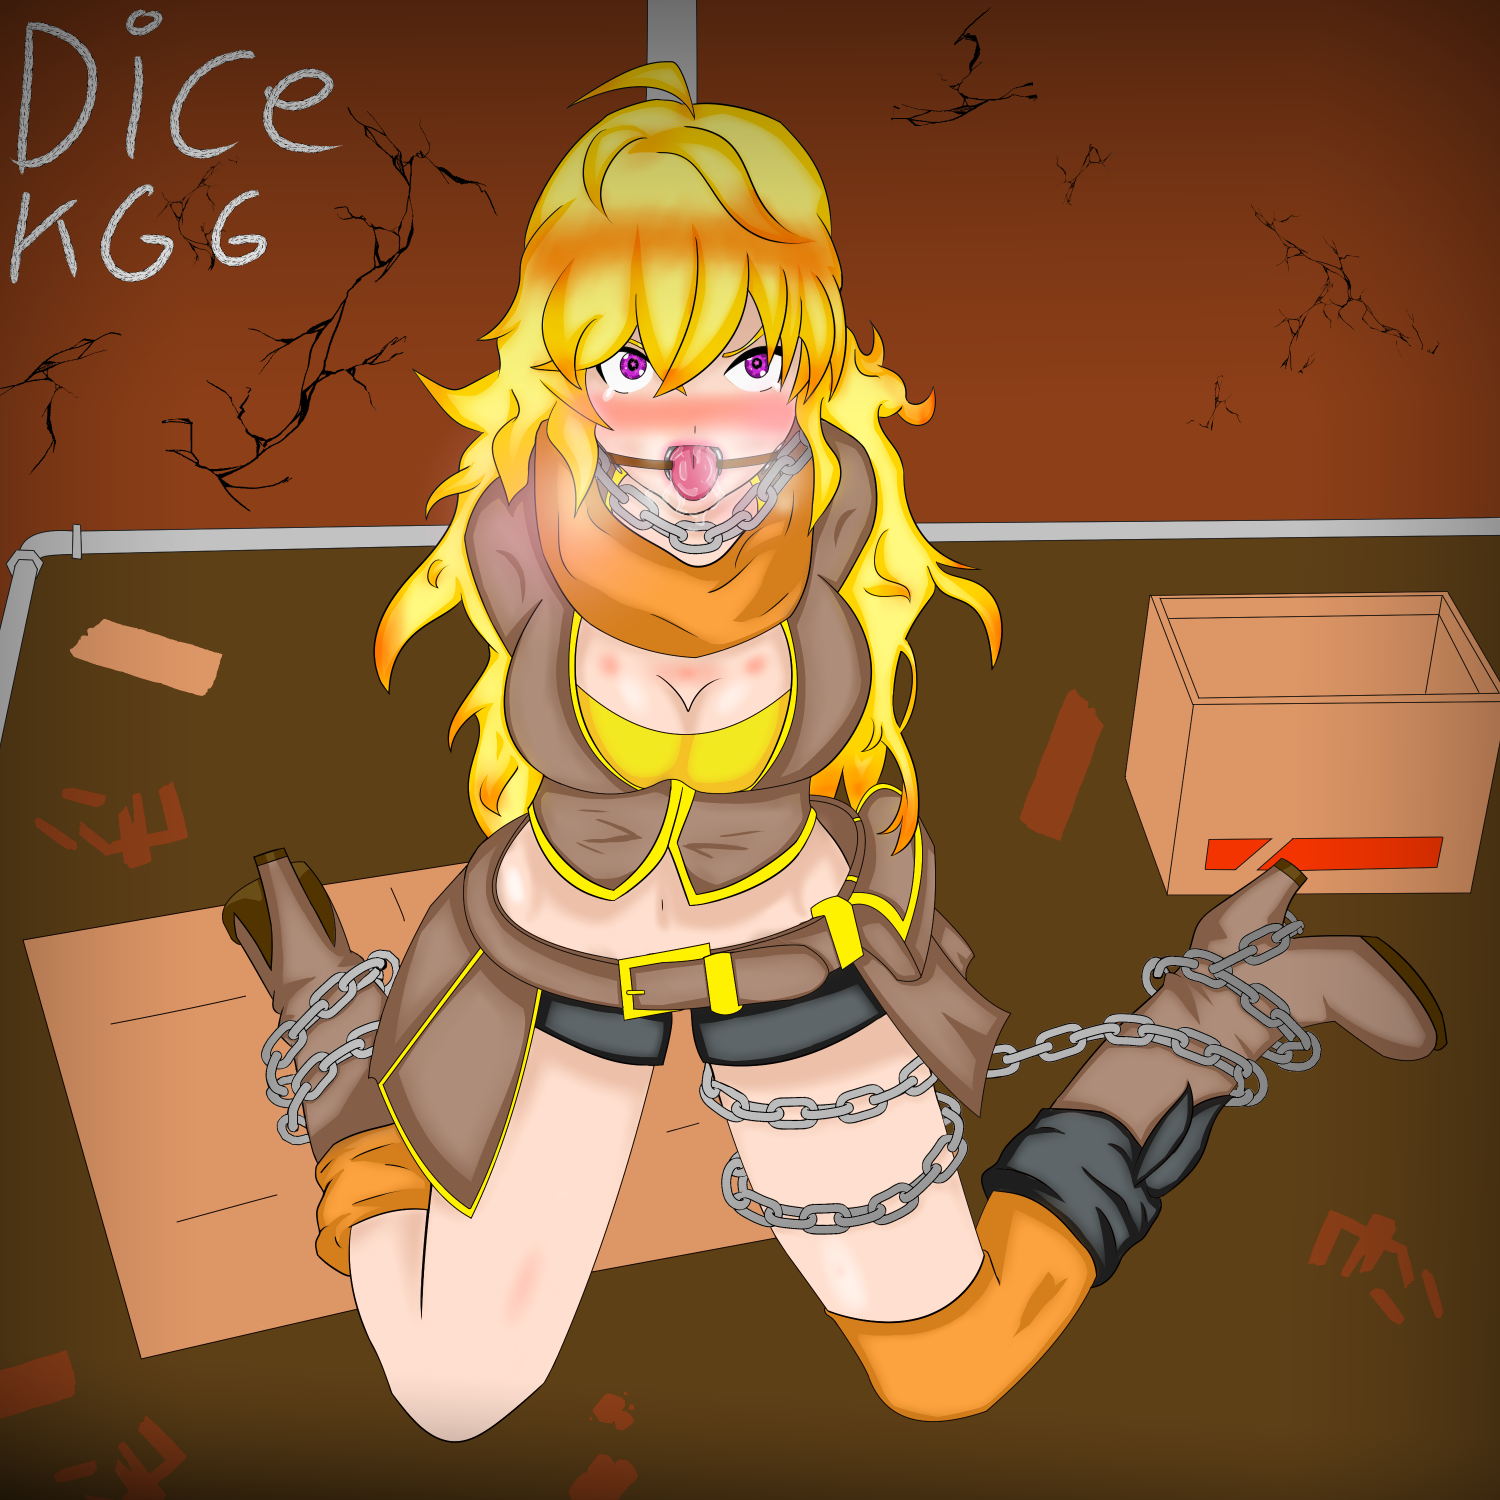 Gagged Animation yang ring gagged part 1dice-kgg on newgrounds